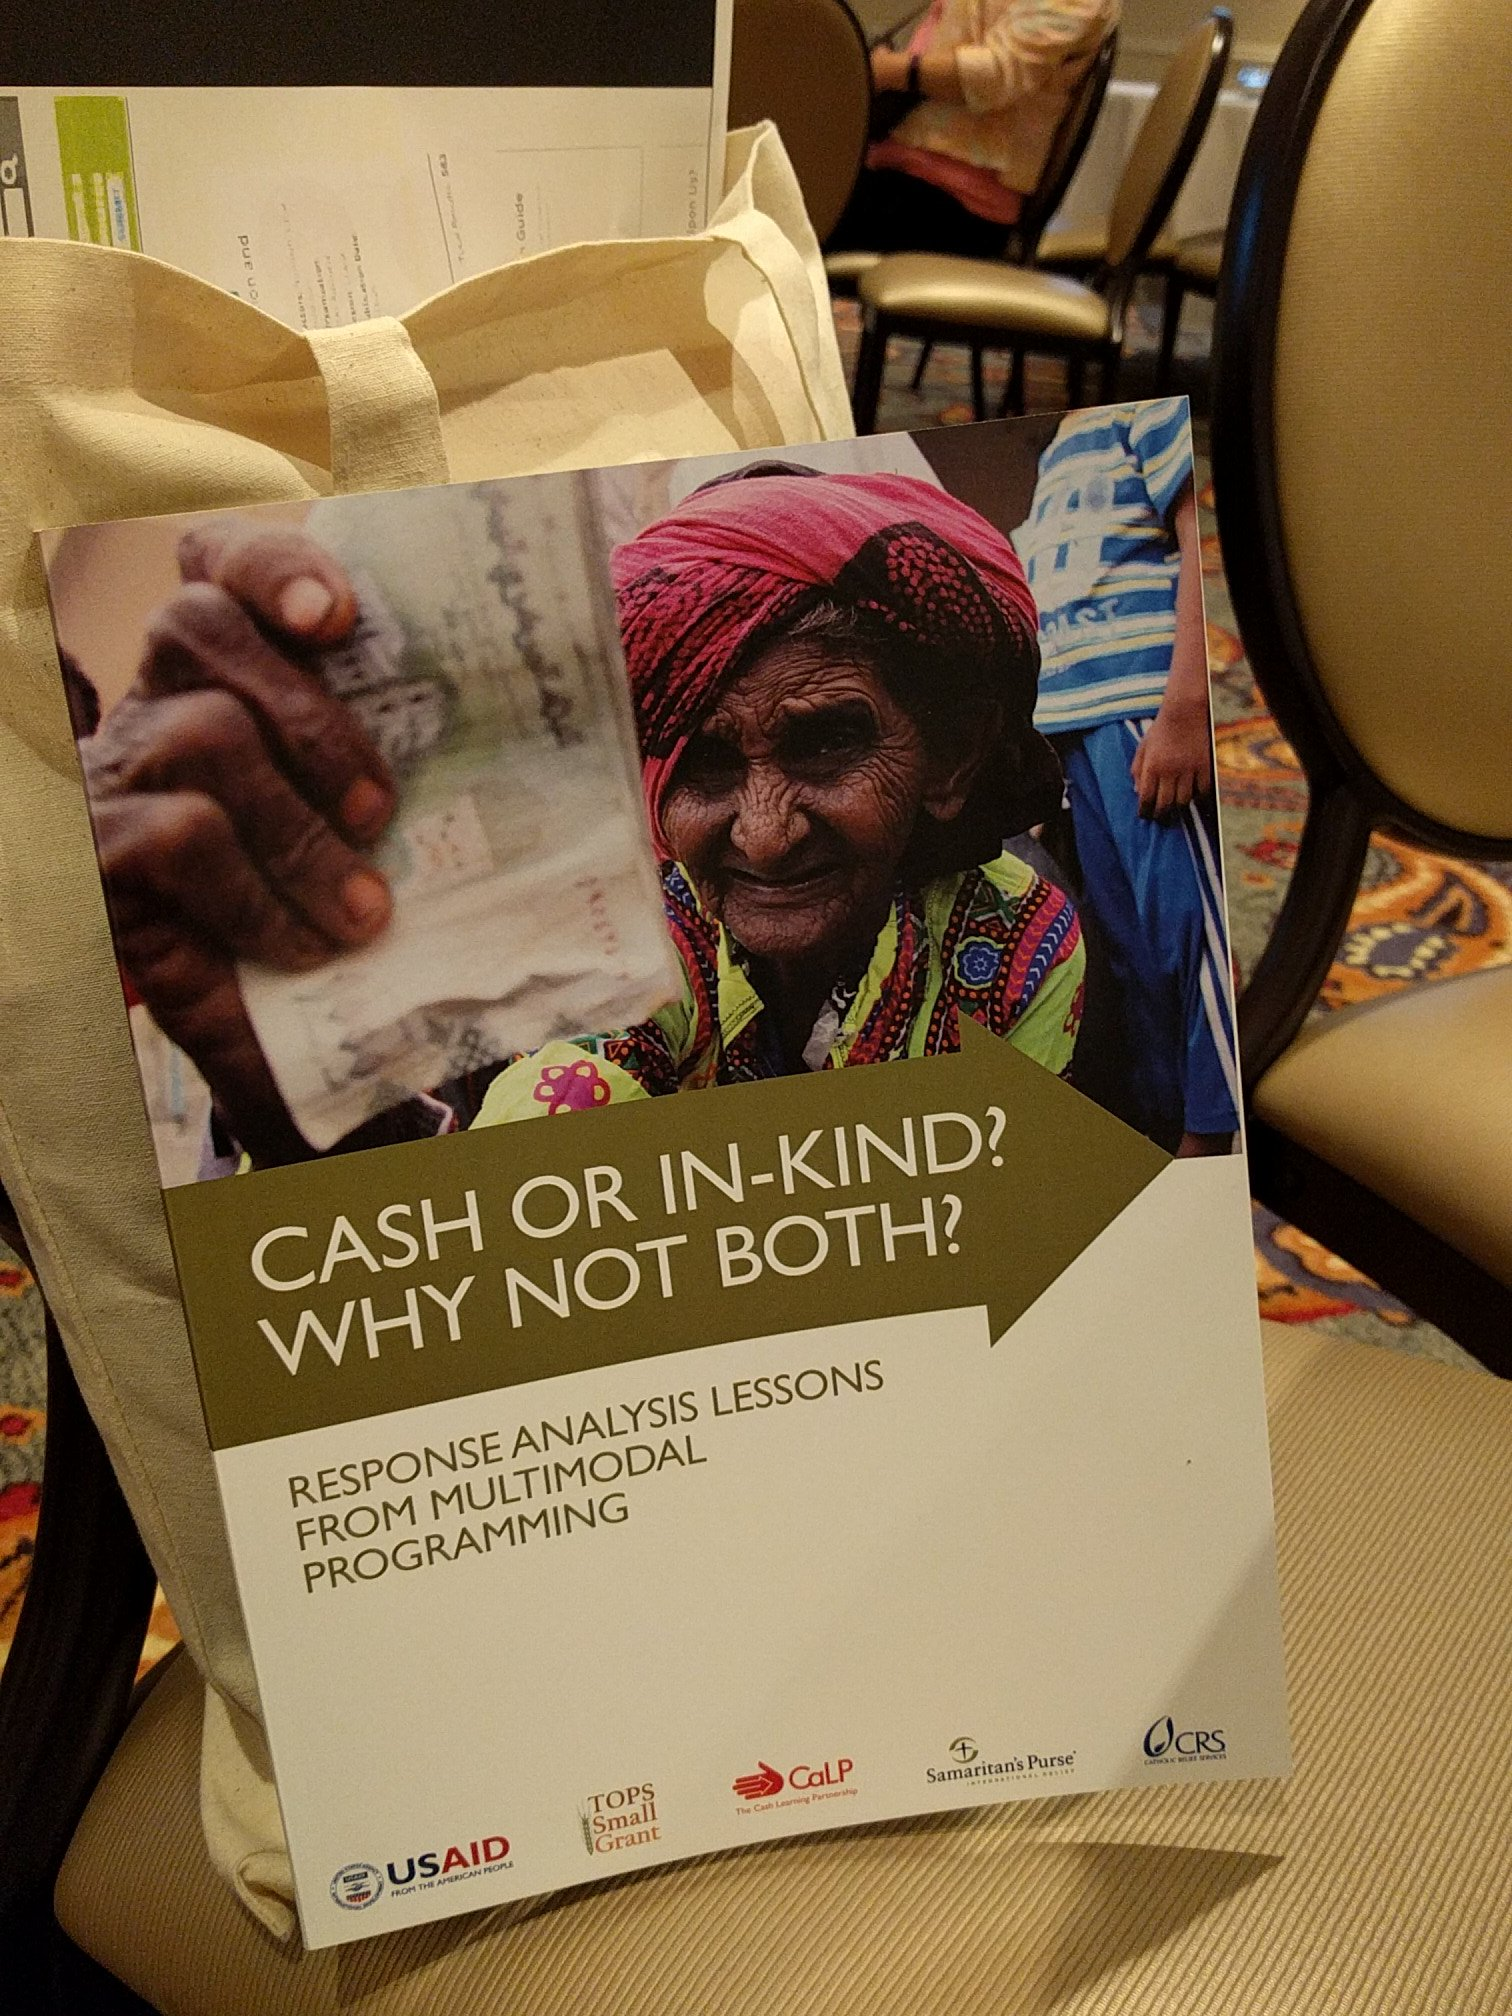 #ksdc17 | fresh off the press: https://t.co/0qLK5WxtPB @CatholicRelief @cashlearning #safetynets https://t.co/Jm0CPZm4aW